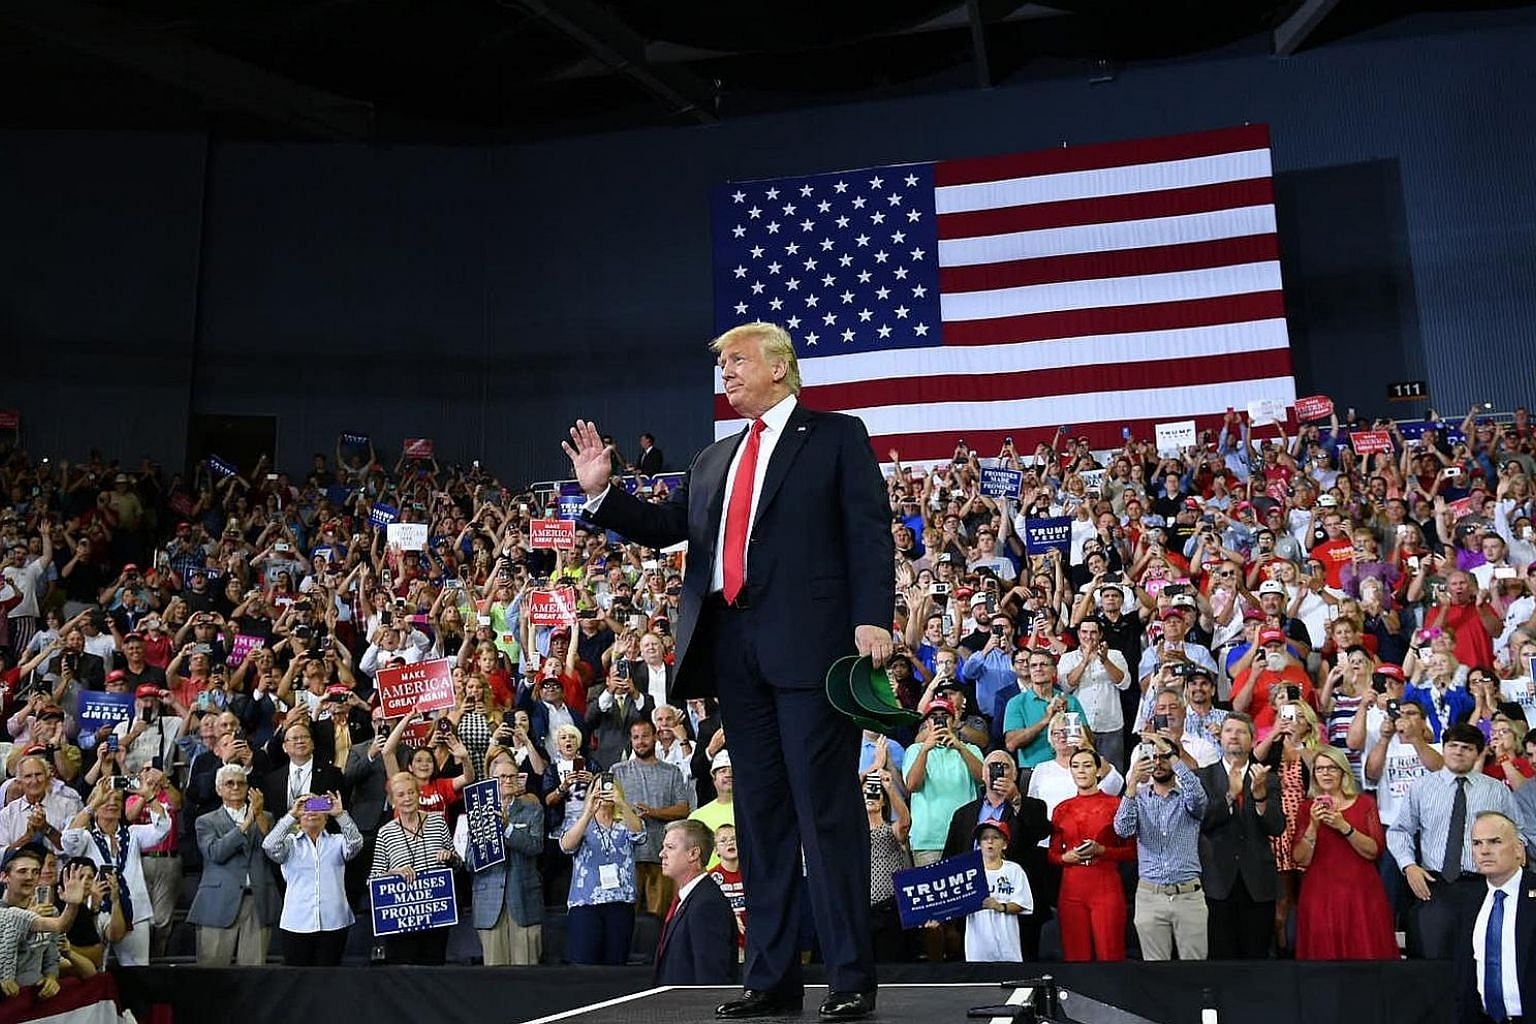 US President Donald Trump at a campaign rally in Indiana on Thursday. Broadening the tariff battle would mark the most significant move yet in a months-long trade stand-off and dent China's growth prospects.